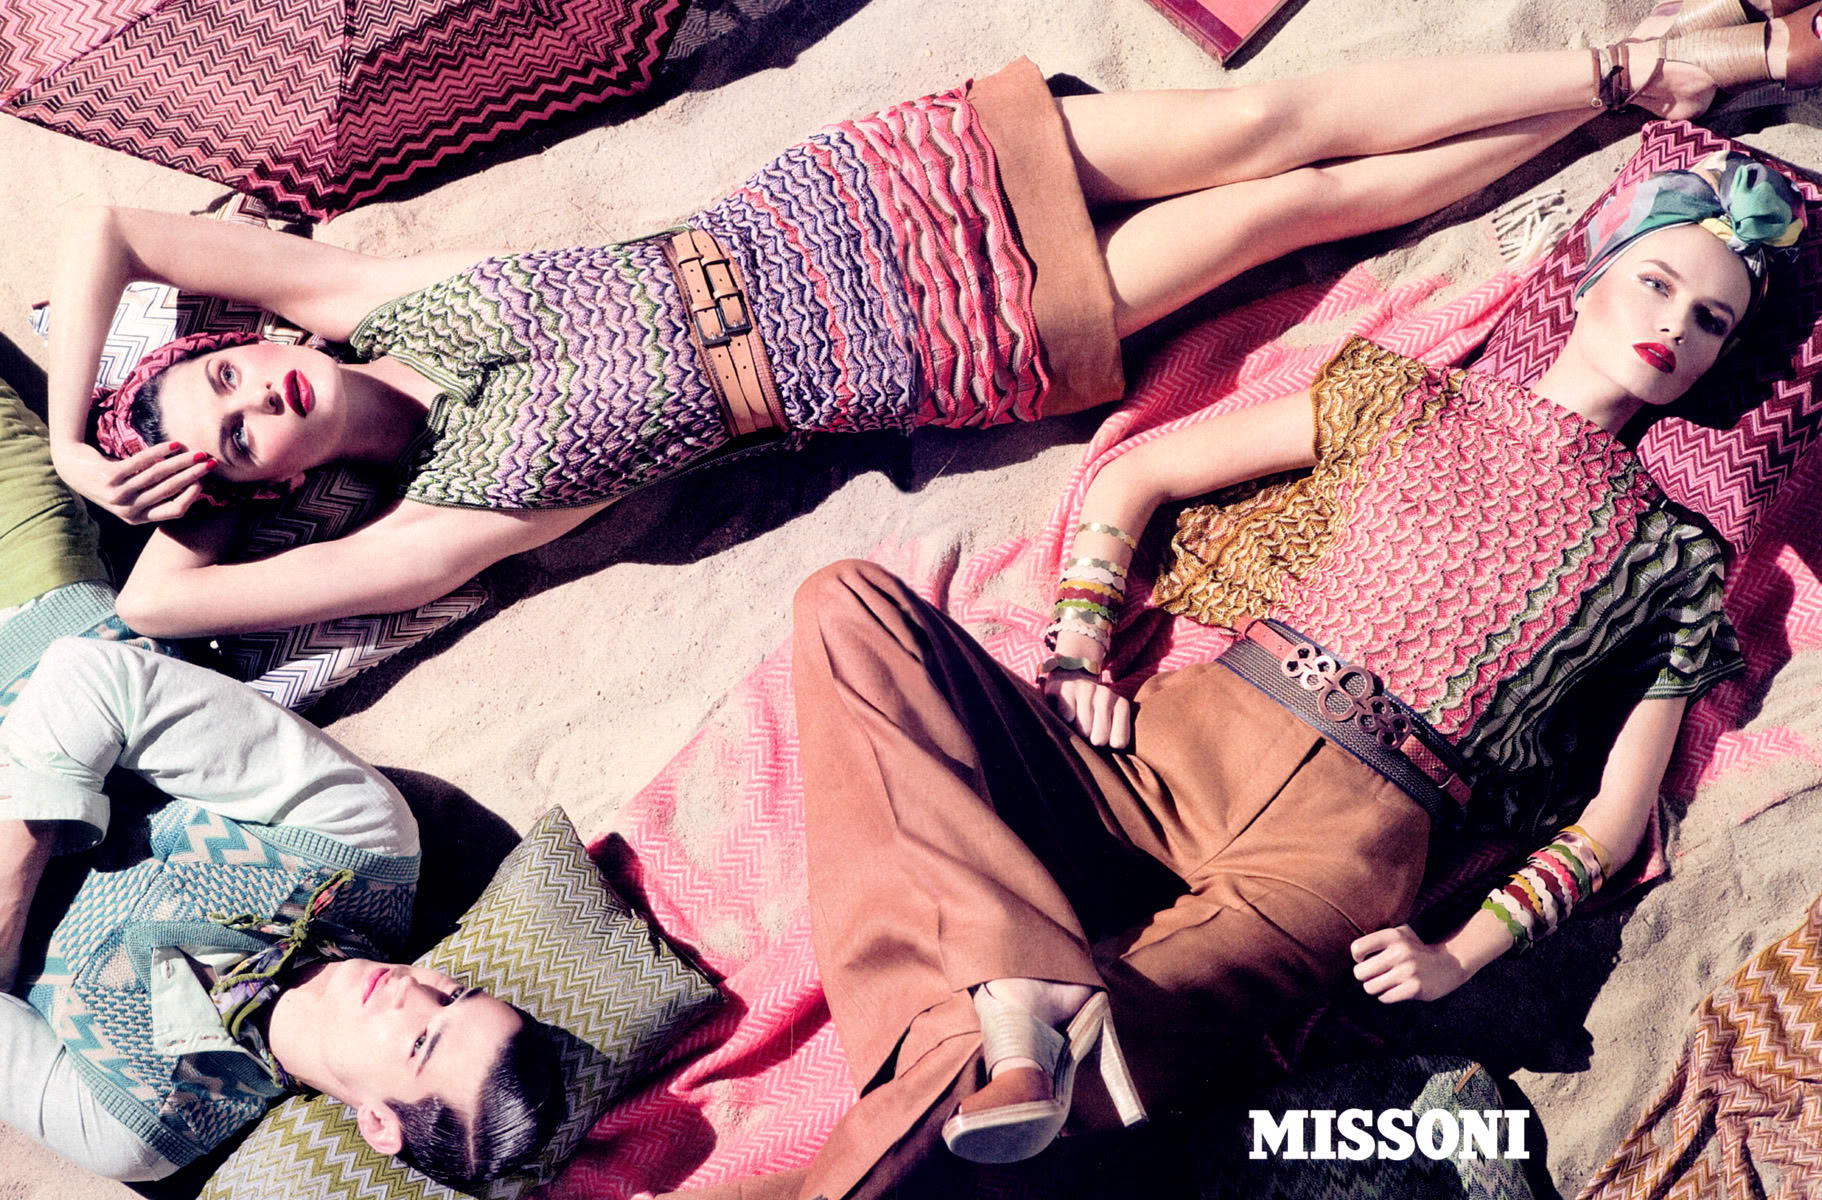 missoni-s-s-09-ad-campaign-courtesy-of-missoni.jpeg